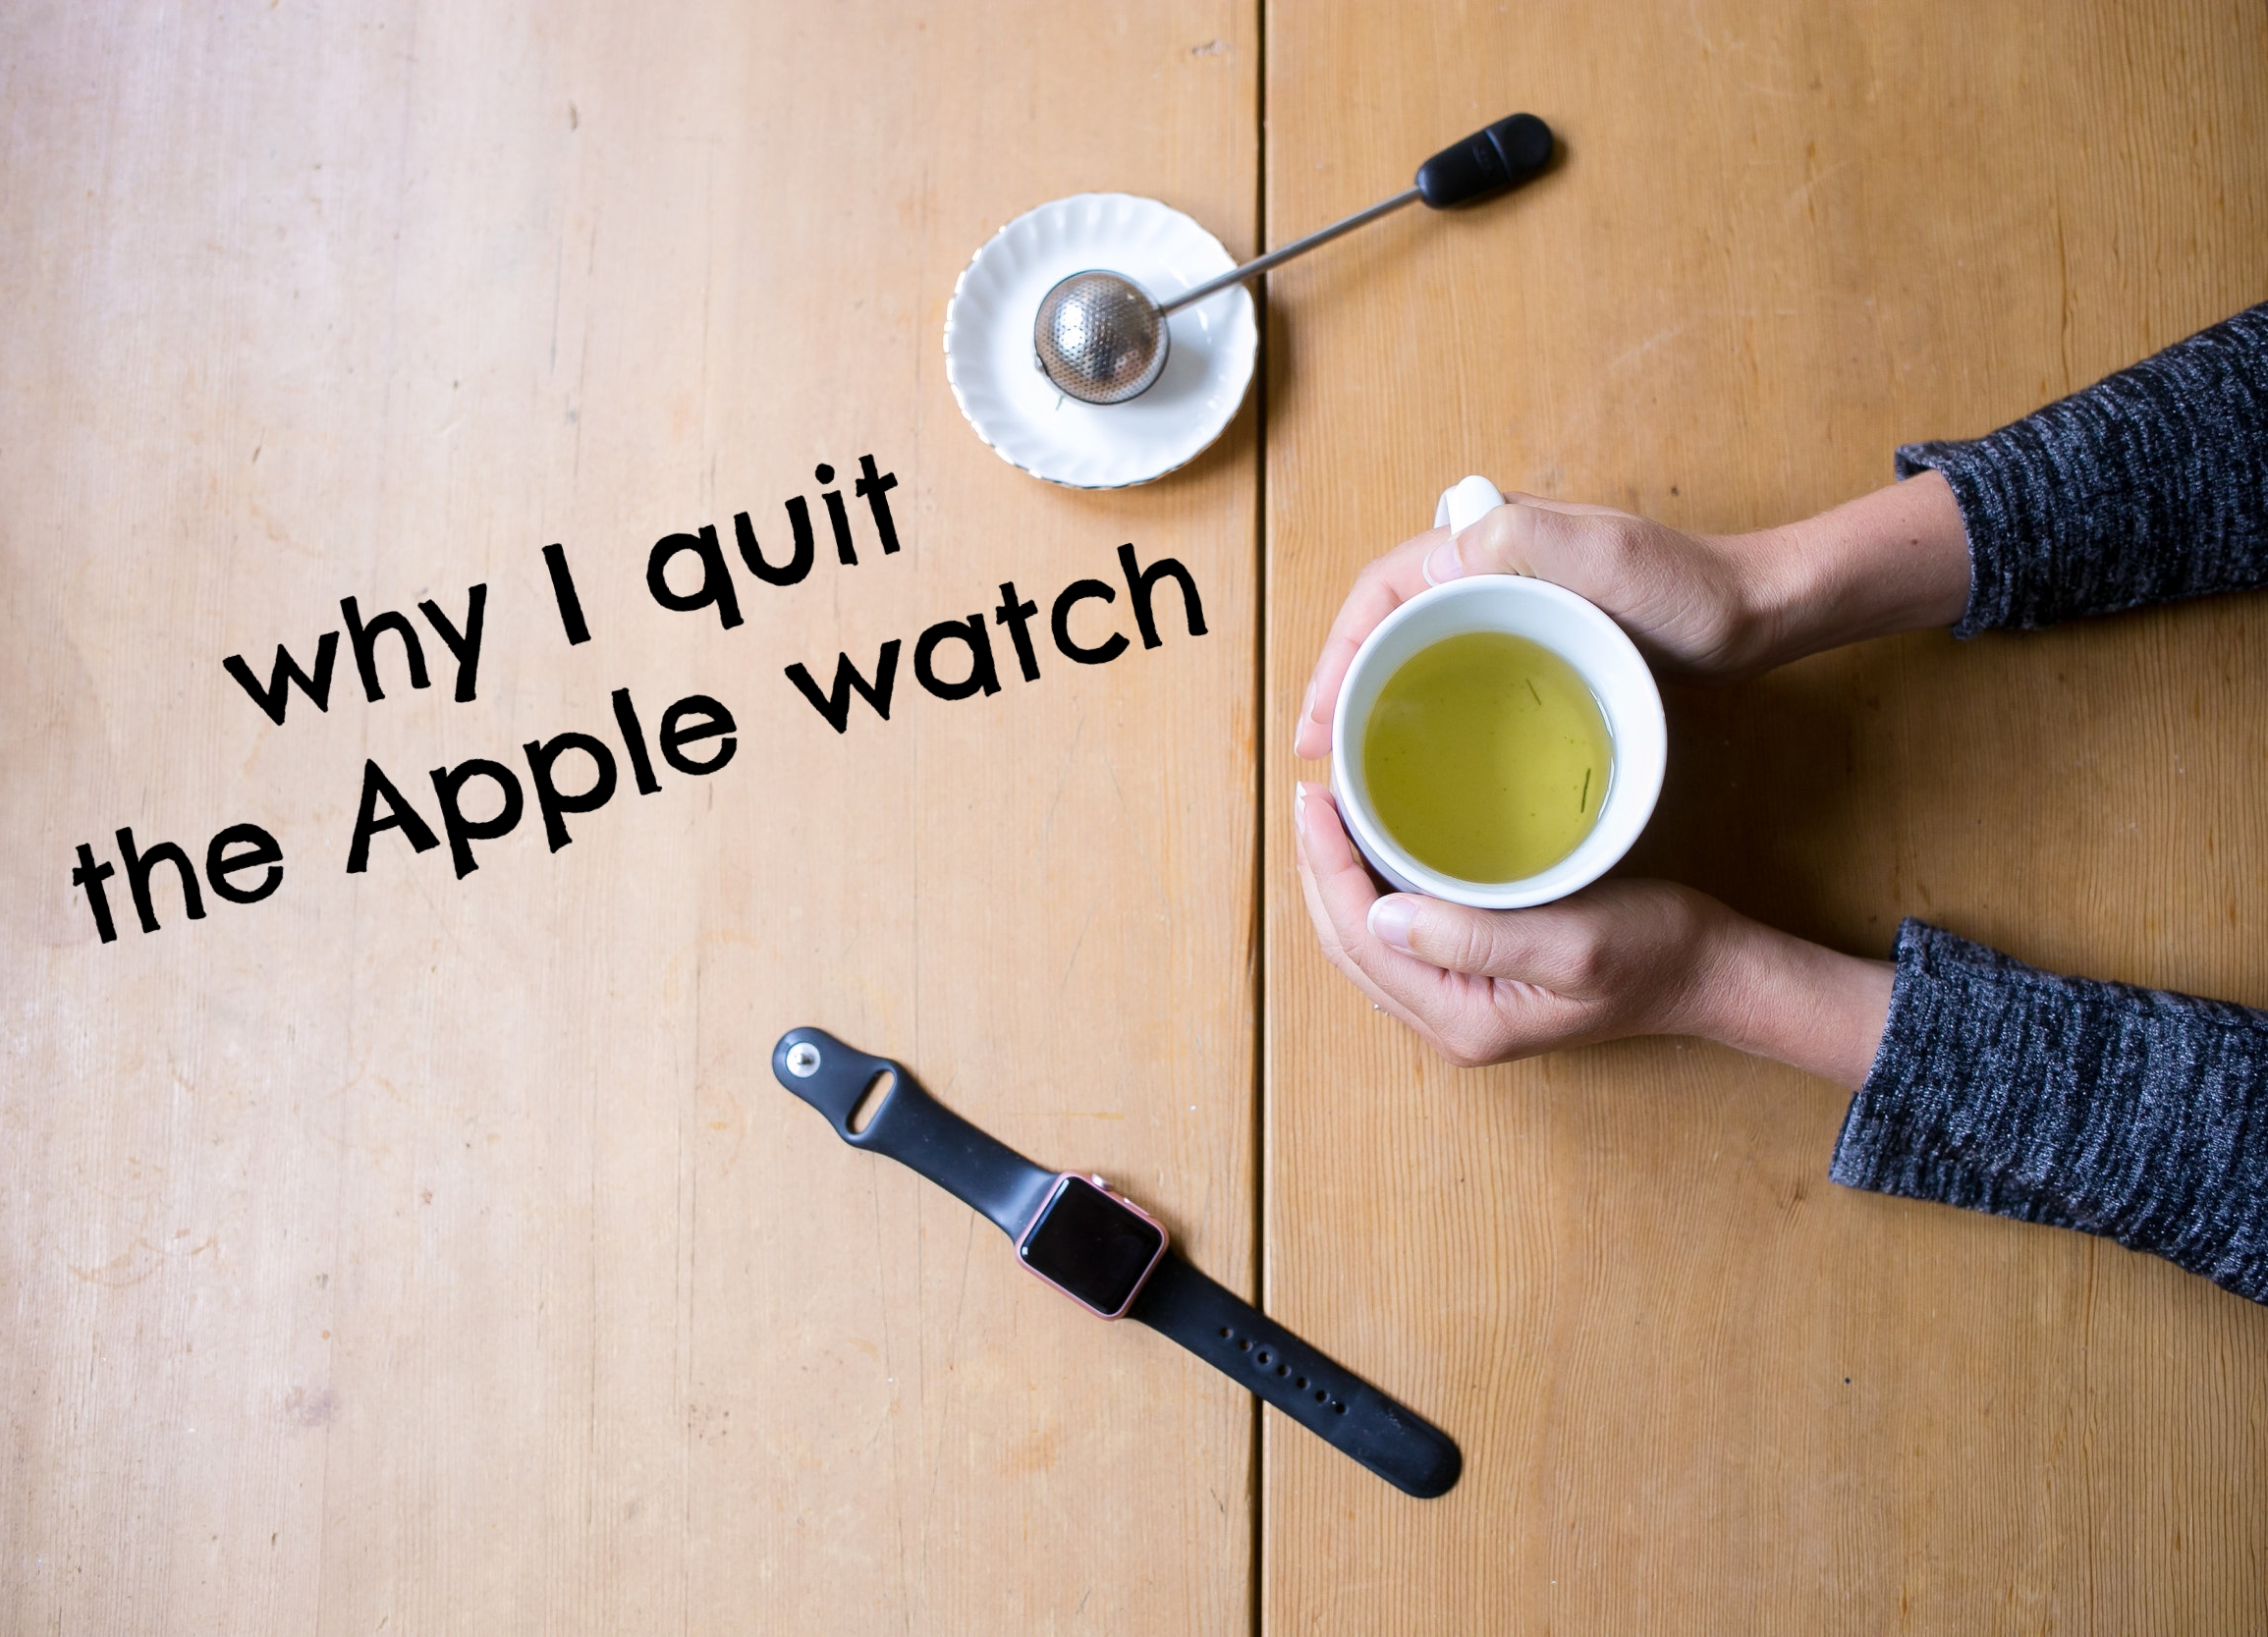 why I quit the Apple watch